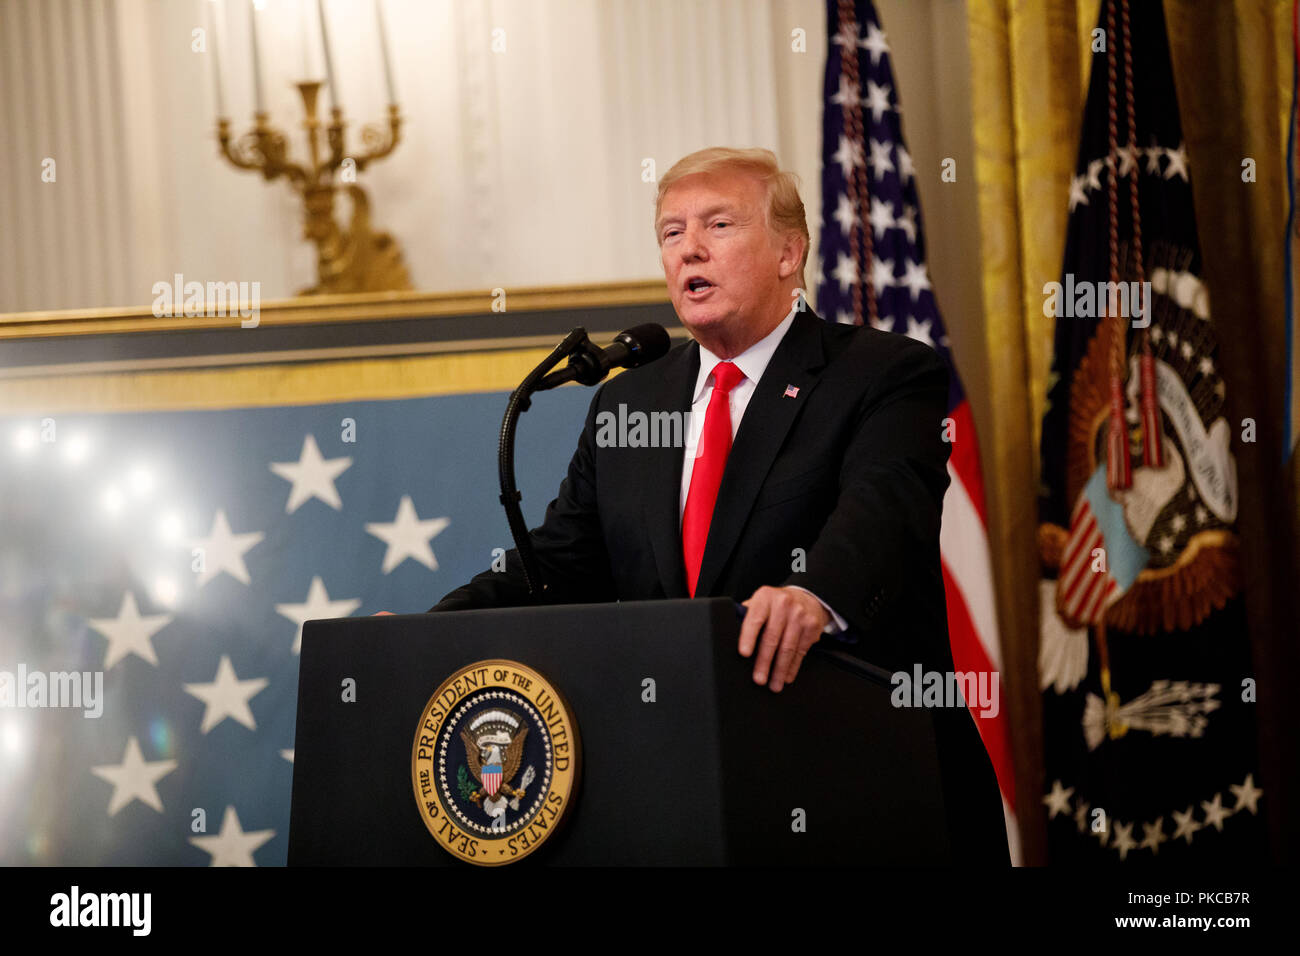 Washington, DC, USA. 12th Sep, 2018. U.S. President Donald Trump speaks during a Congressional Medal of Honor Society Reception at the White House in Washington, DC, the United States, on Sept. 12, 2018. Credit: Ting Shen/Xinhua/Alamy Live News Stock Photo